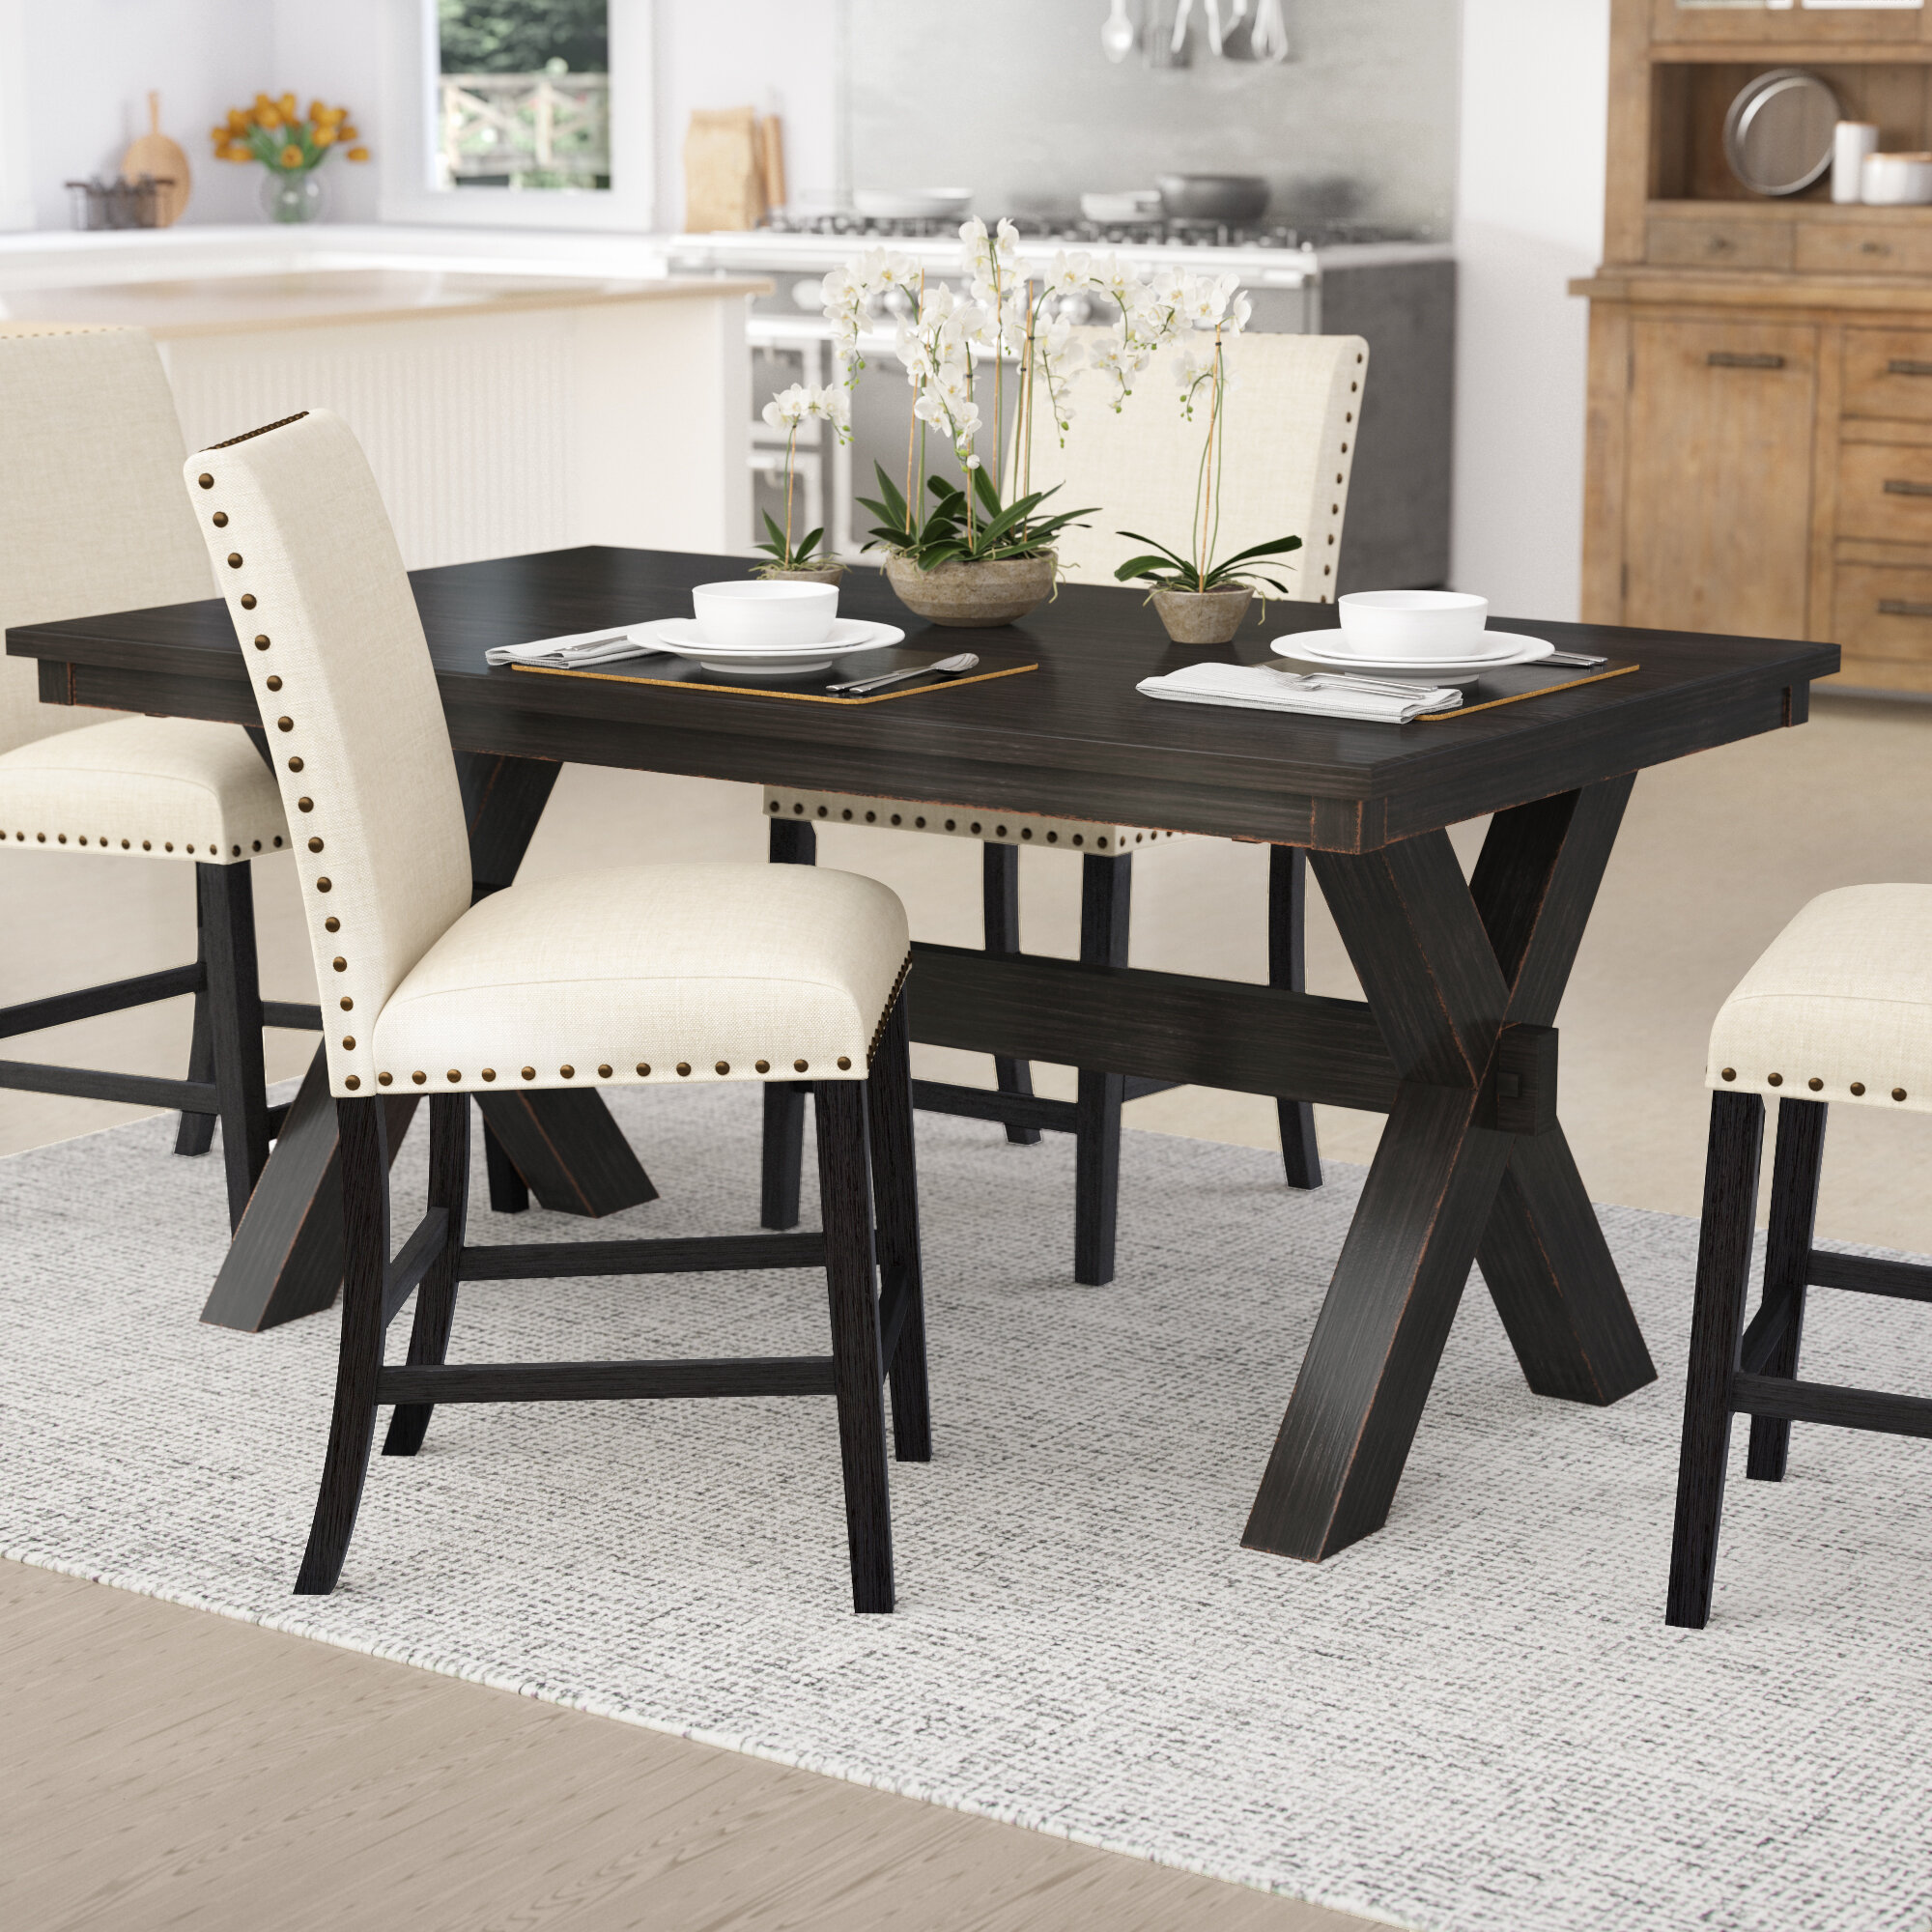 Laurel Foundry Modern Farmhouse Manitou Transitional Dining Table U0026 Reviews  | Wayfair